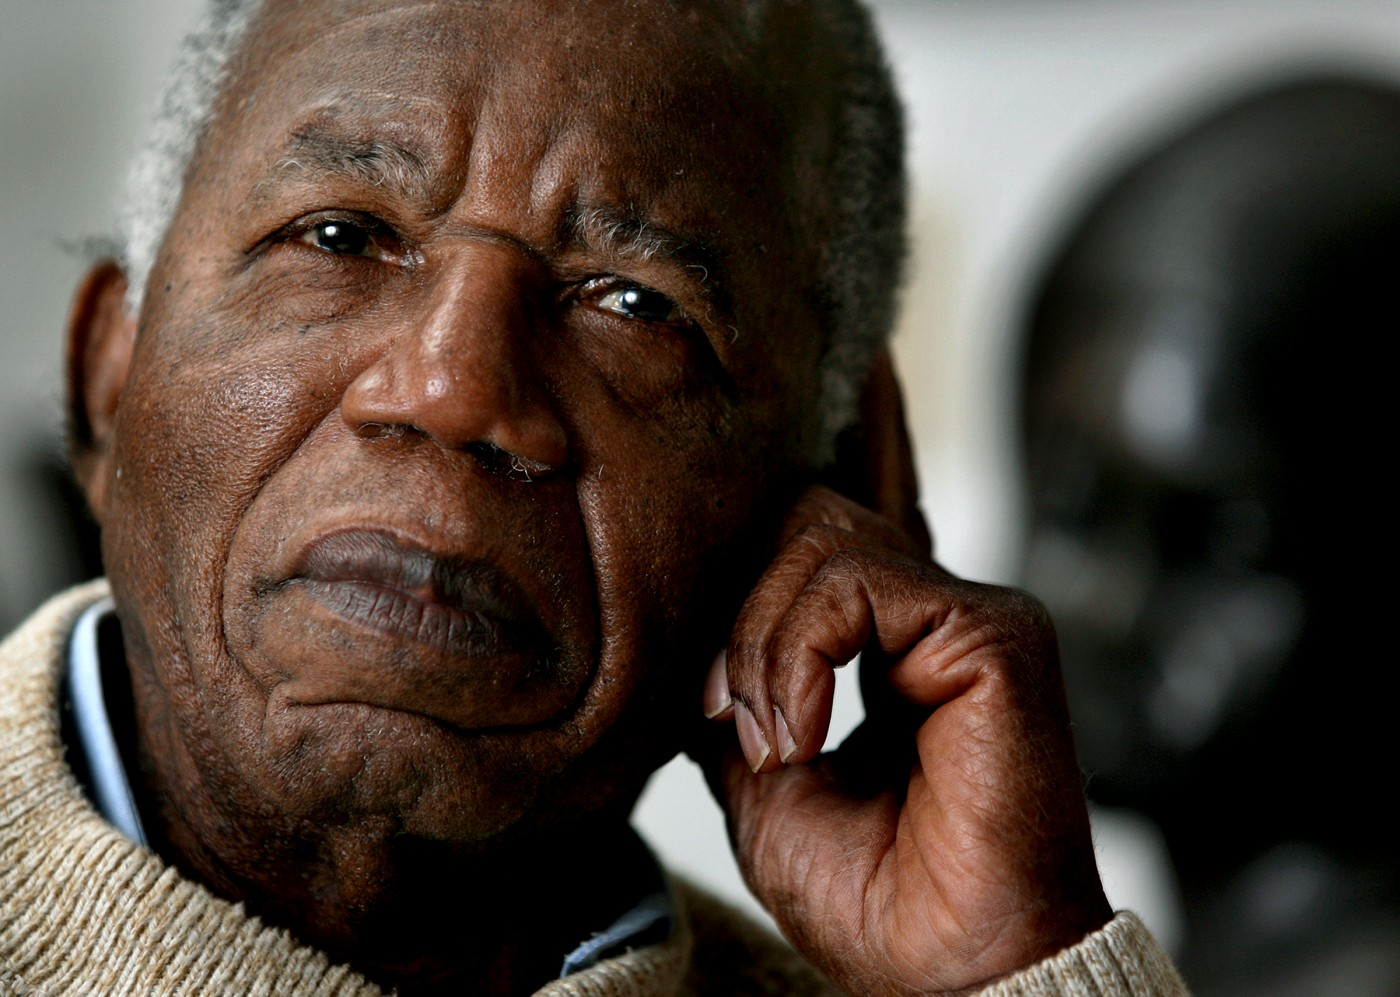 Chinua Achebe, Nigerian-born novelist and poet poses at his home as he reflects on his works and life at his home on the campus of Bard College in Annandale-on-Hudson, New York where he is a professor Tuesday, Jan. 22, 2008. (AP Photo/Craig Ruttle)